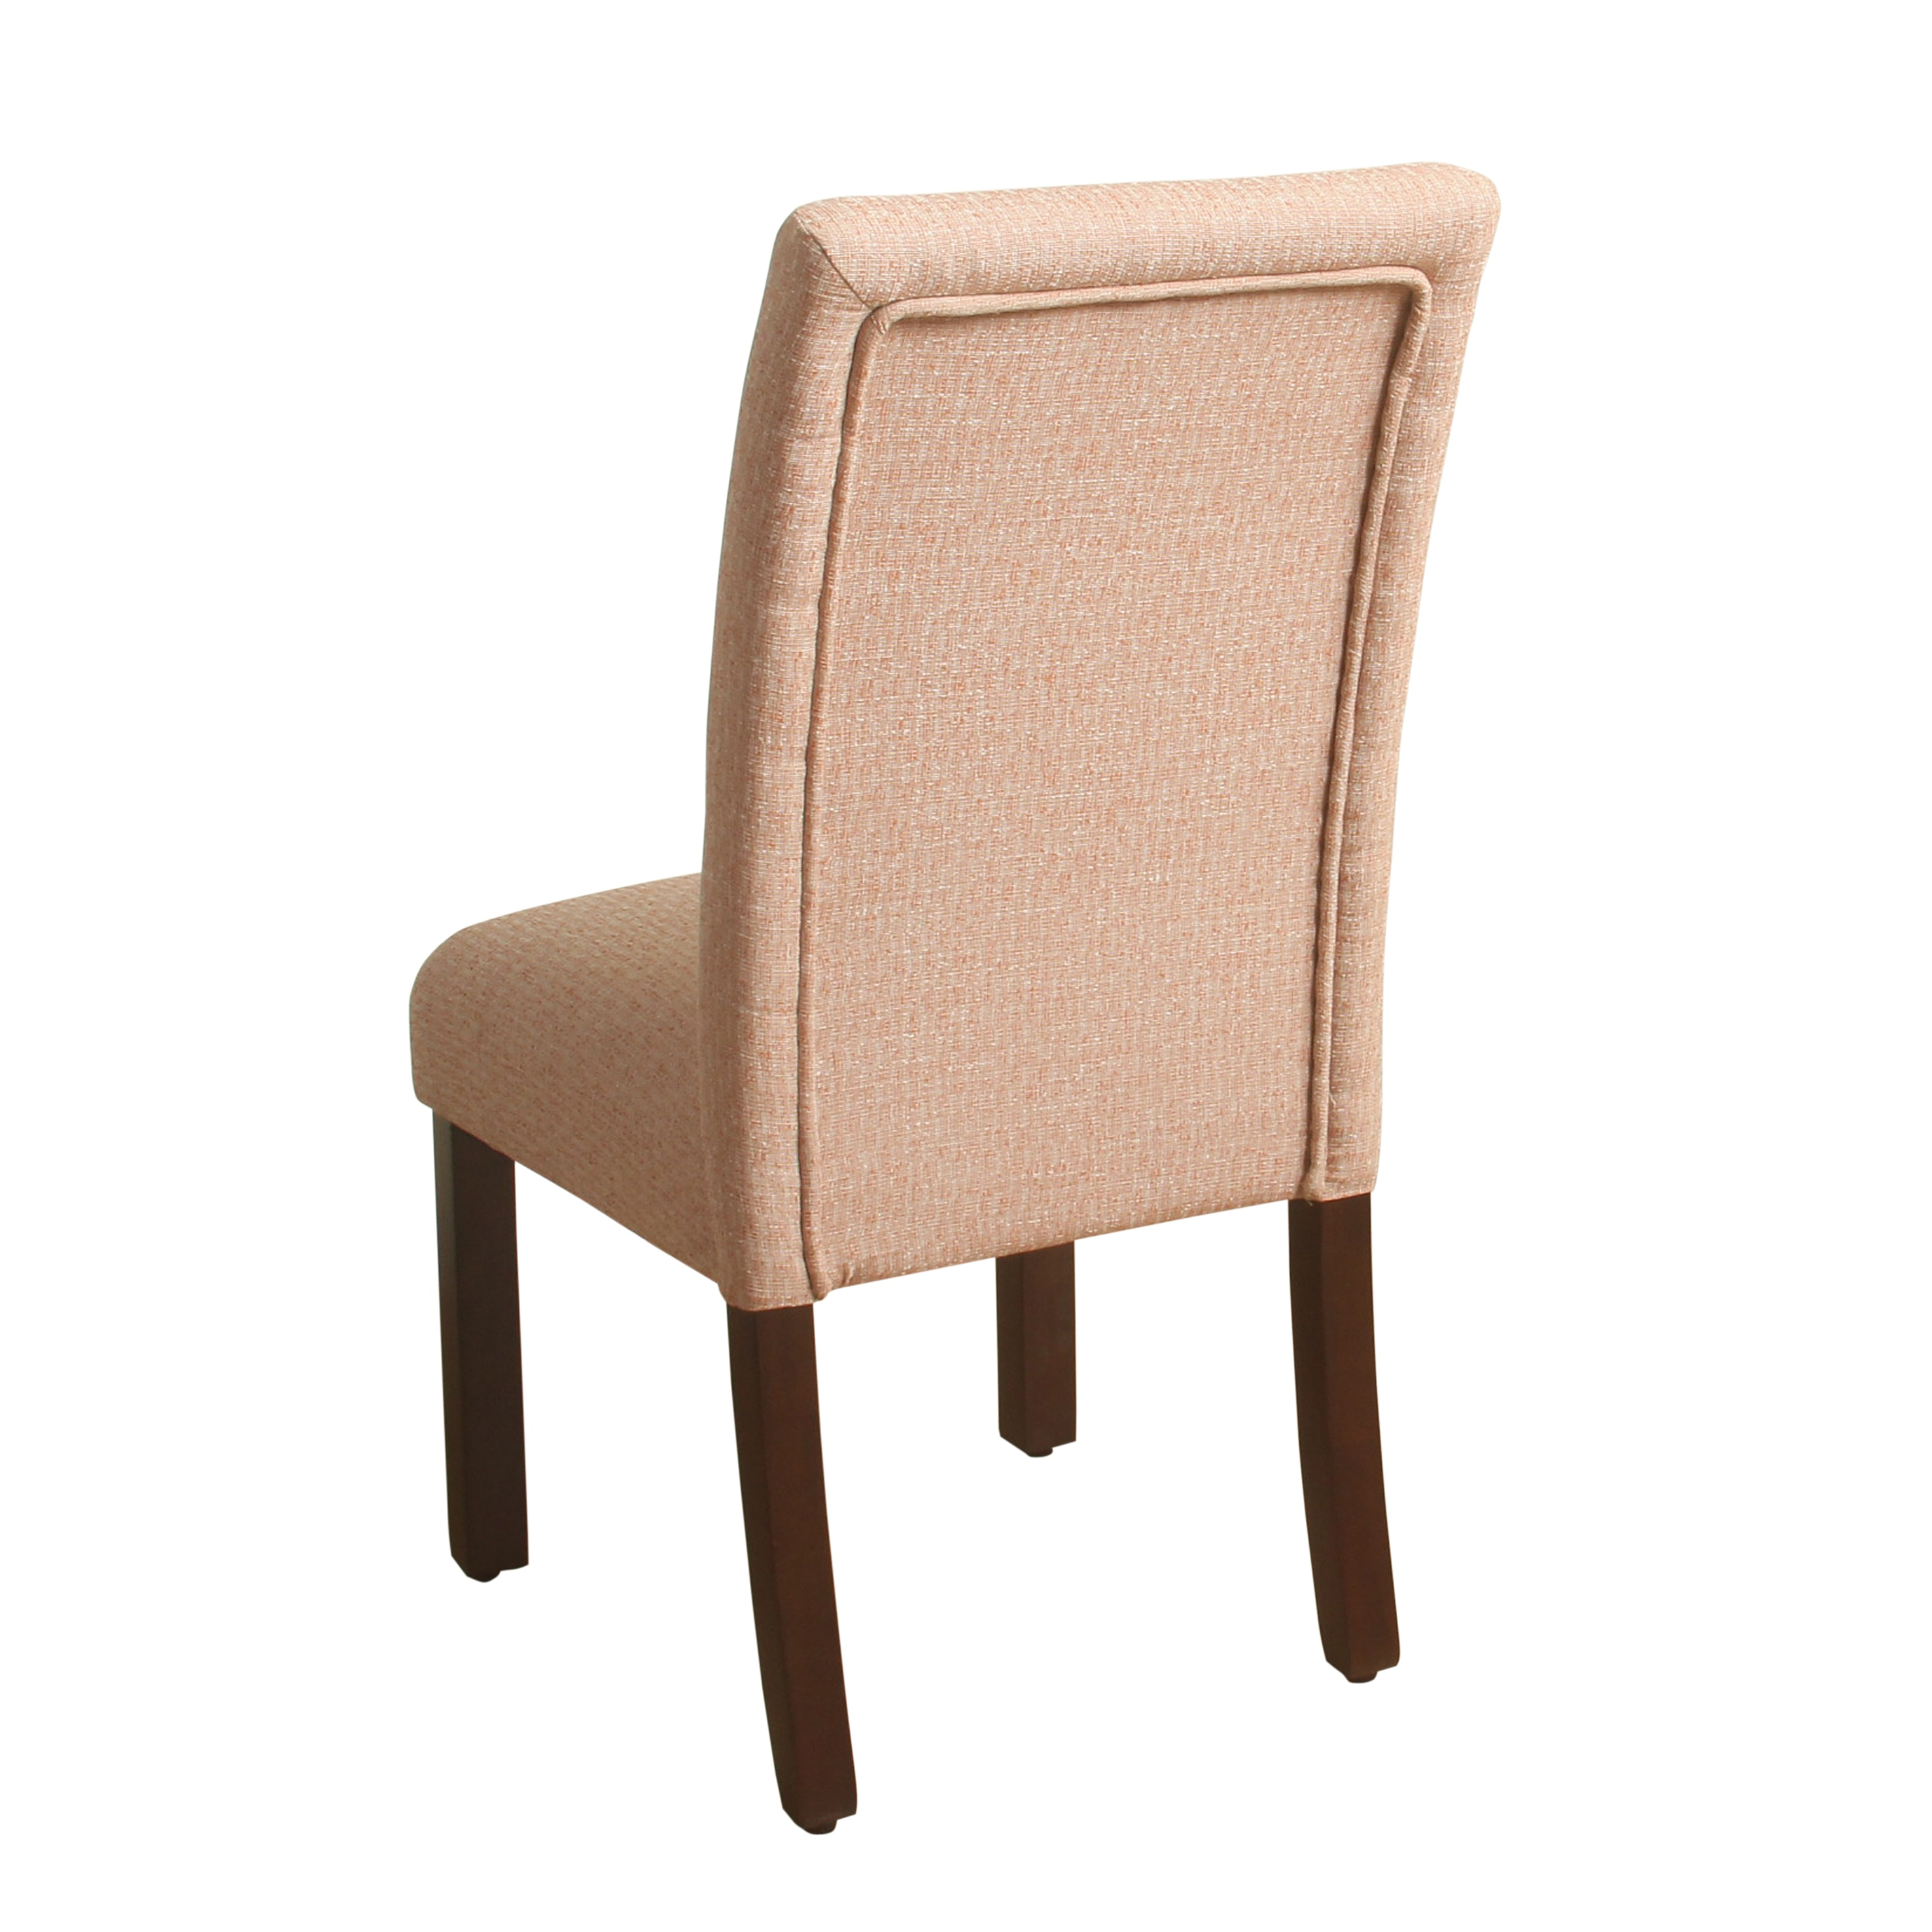 Elegant HomePop Tufted Burnt Orange Parsons Chair   Set Of 2   Free Shipping Today    Overstock.com   20763817